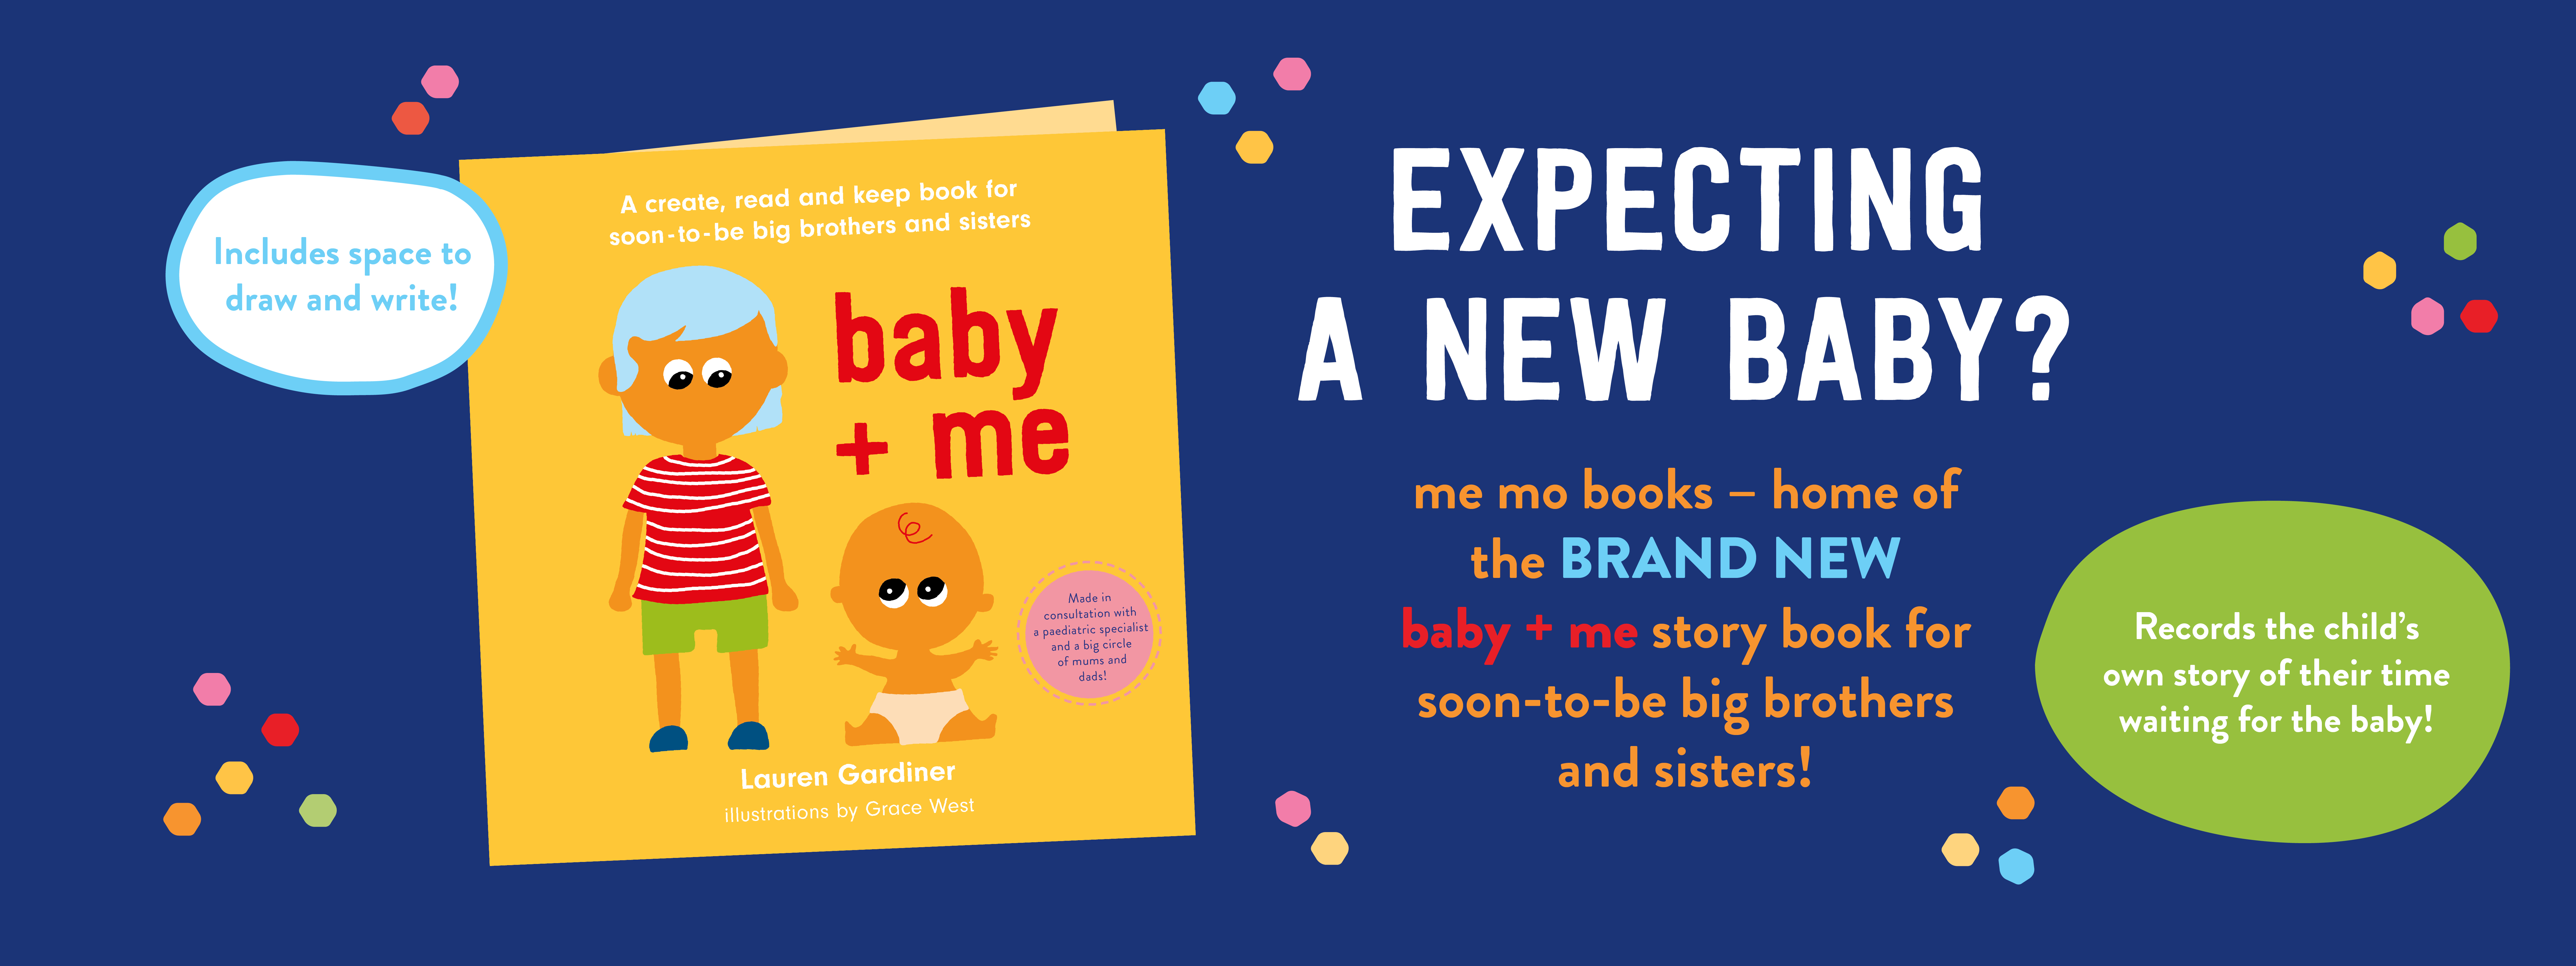 Expecting a new baby with older siblings in tow? The baby + me book can help big brothers and sisters.